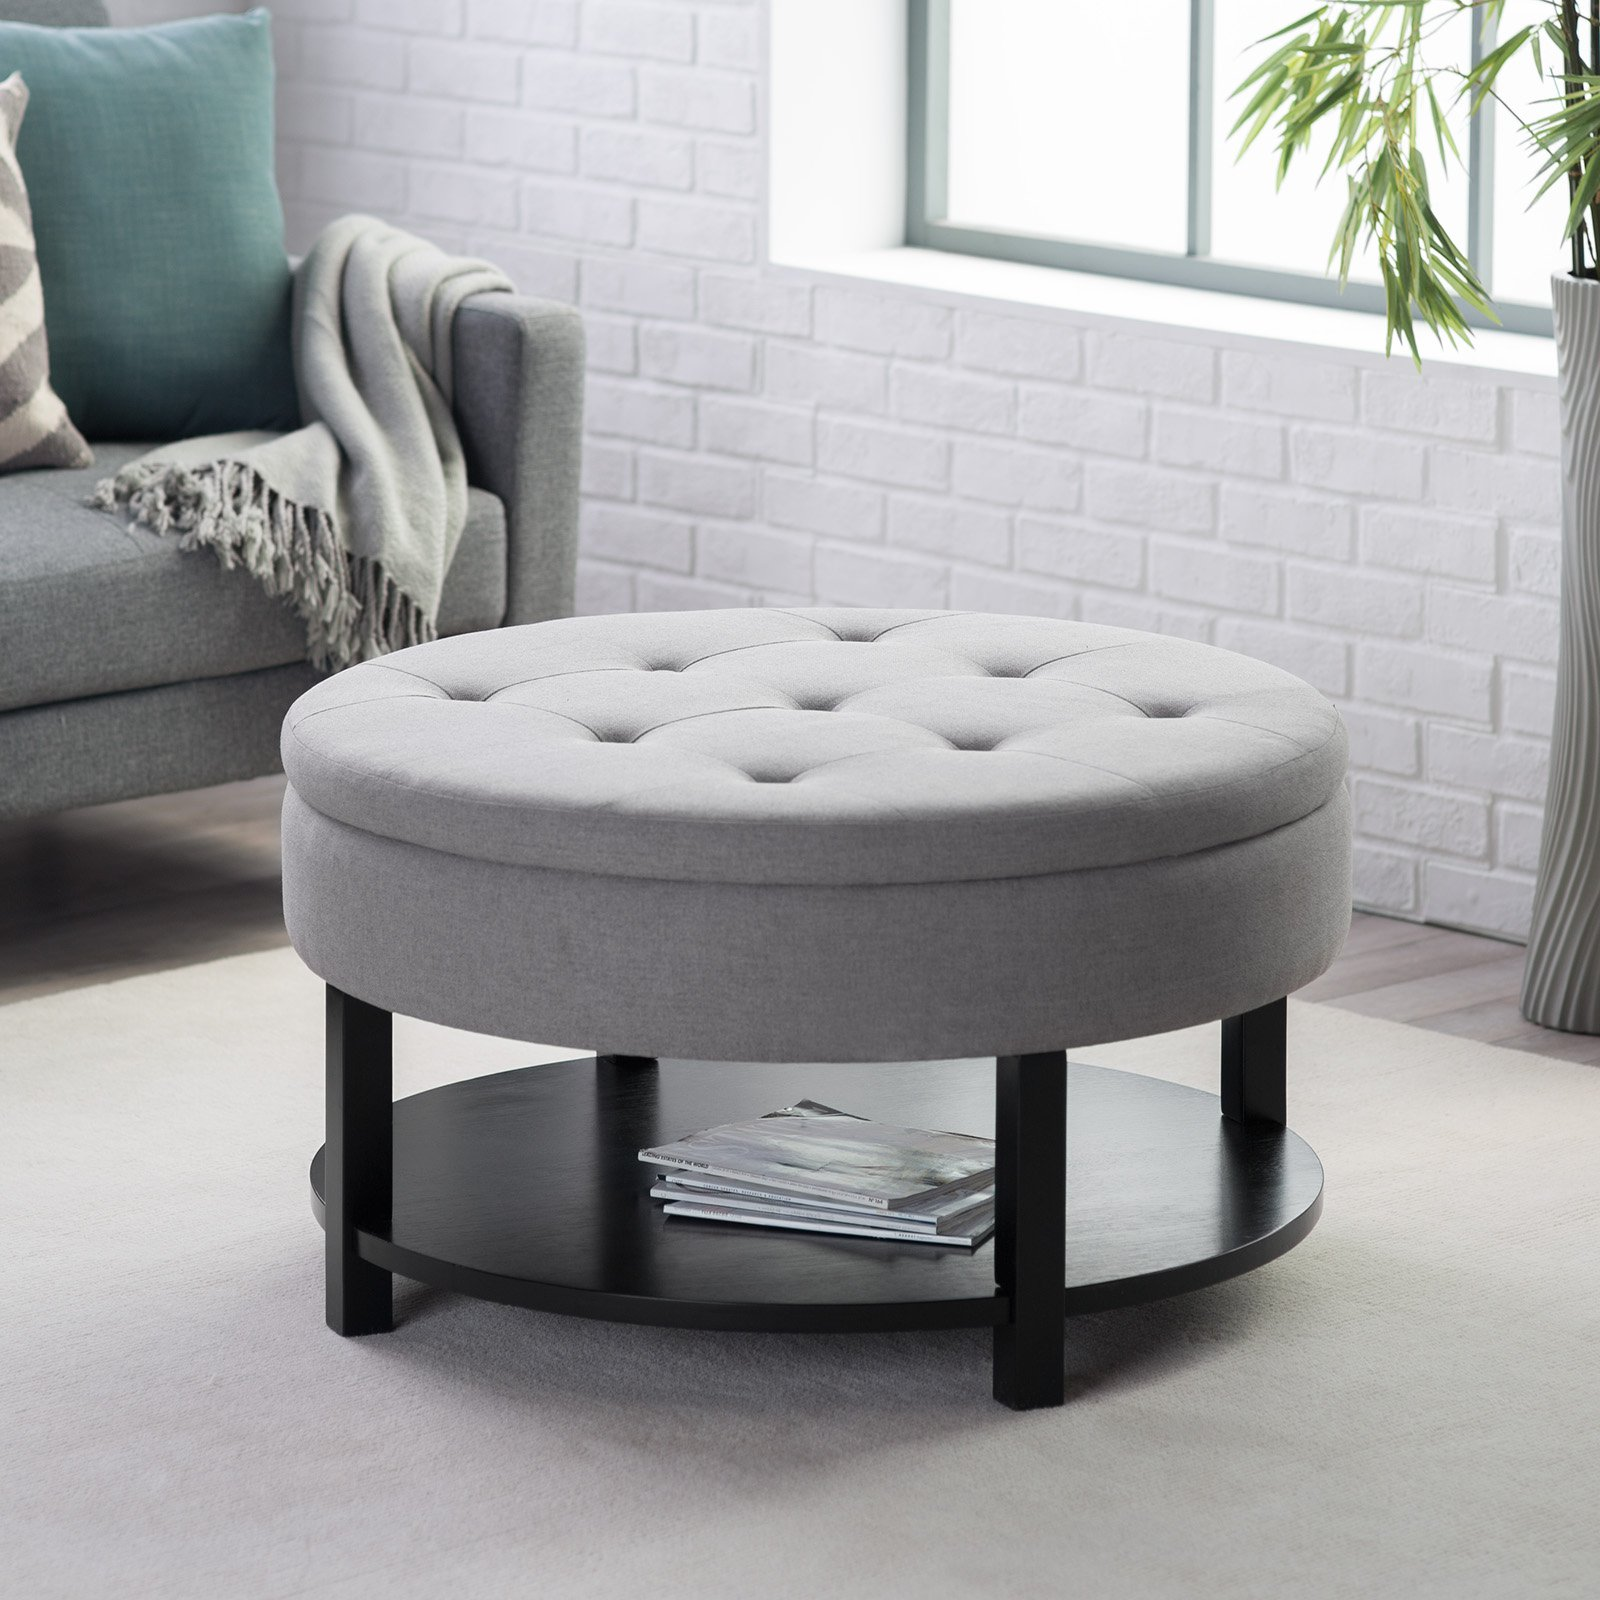 2017 Latest Round Ottoman Coffee Table with Storage